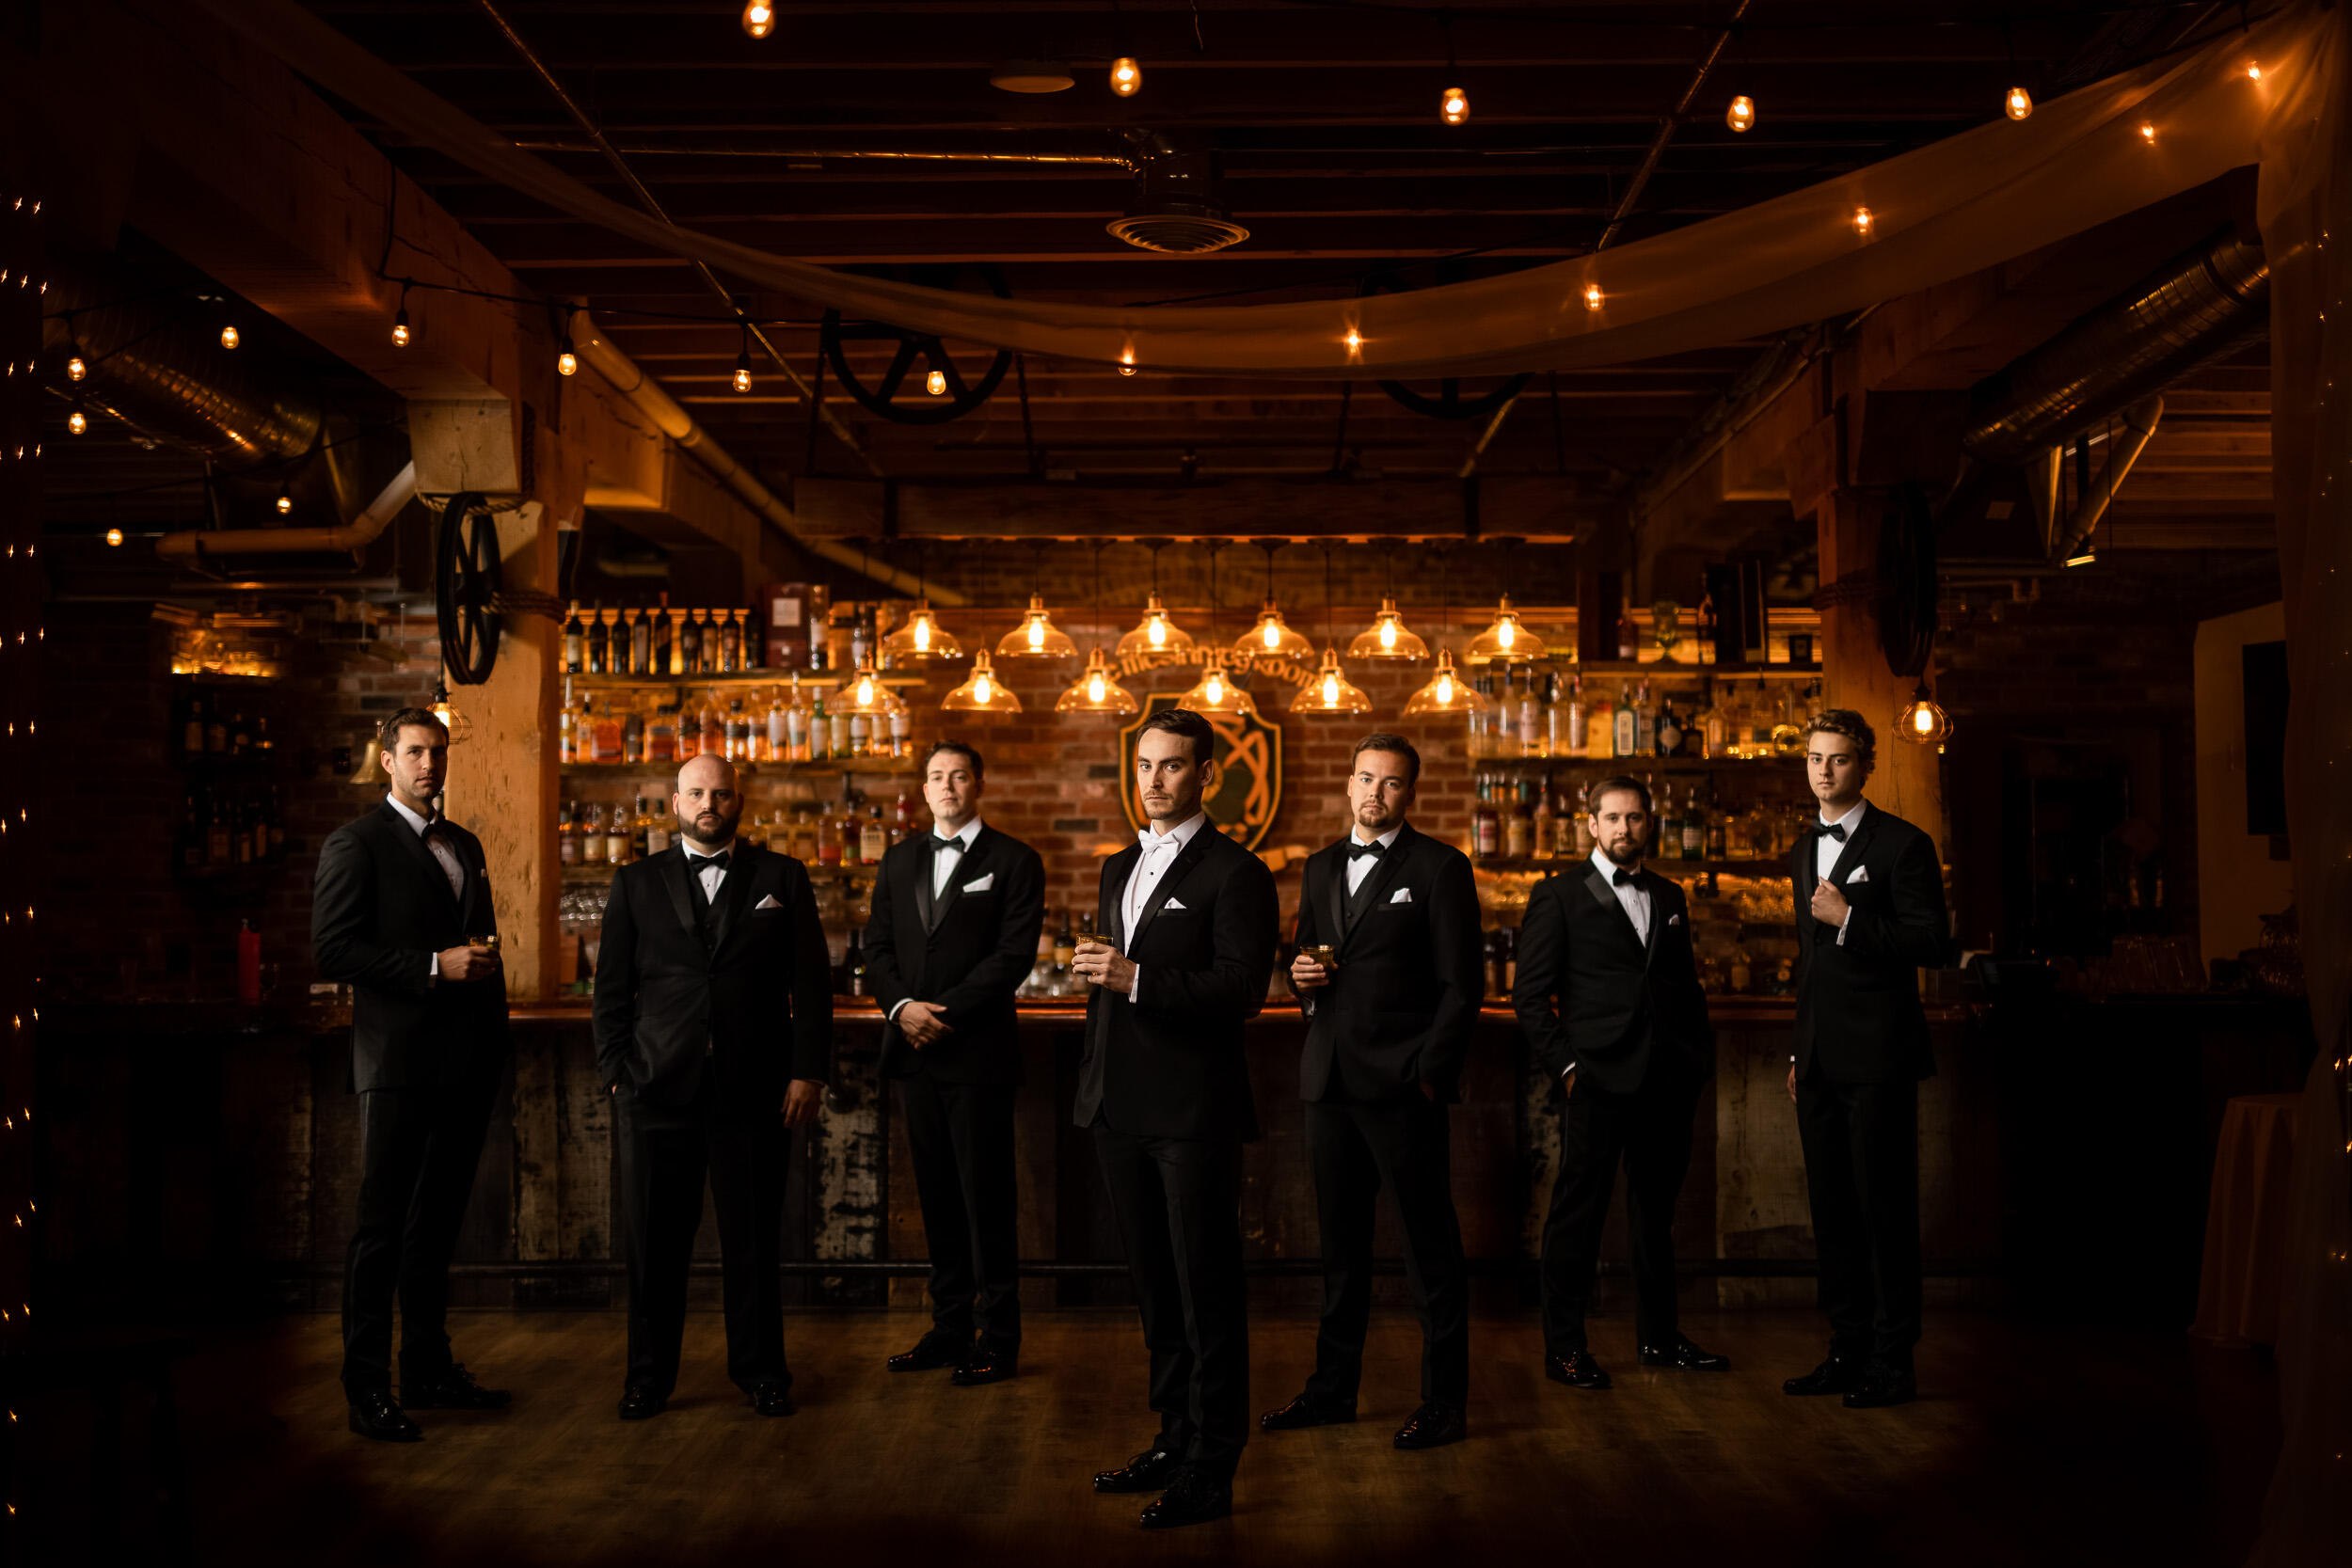 groomsmen standing at bar with groom